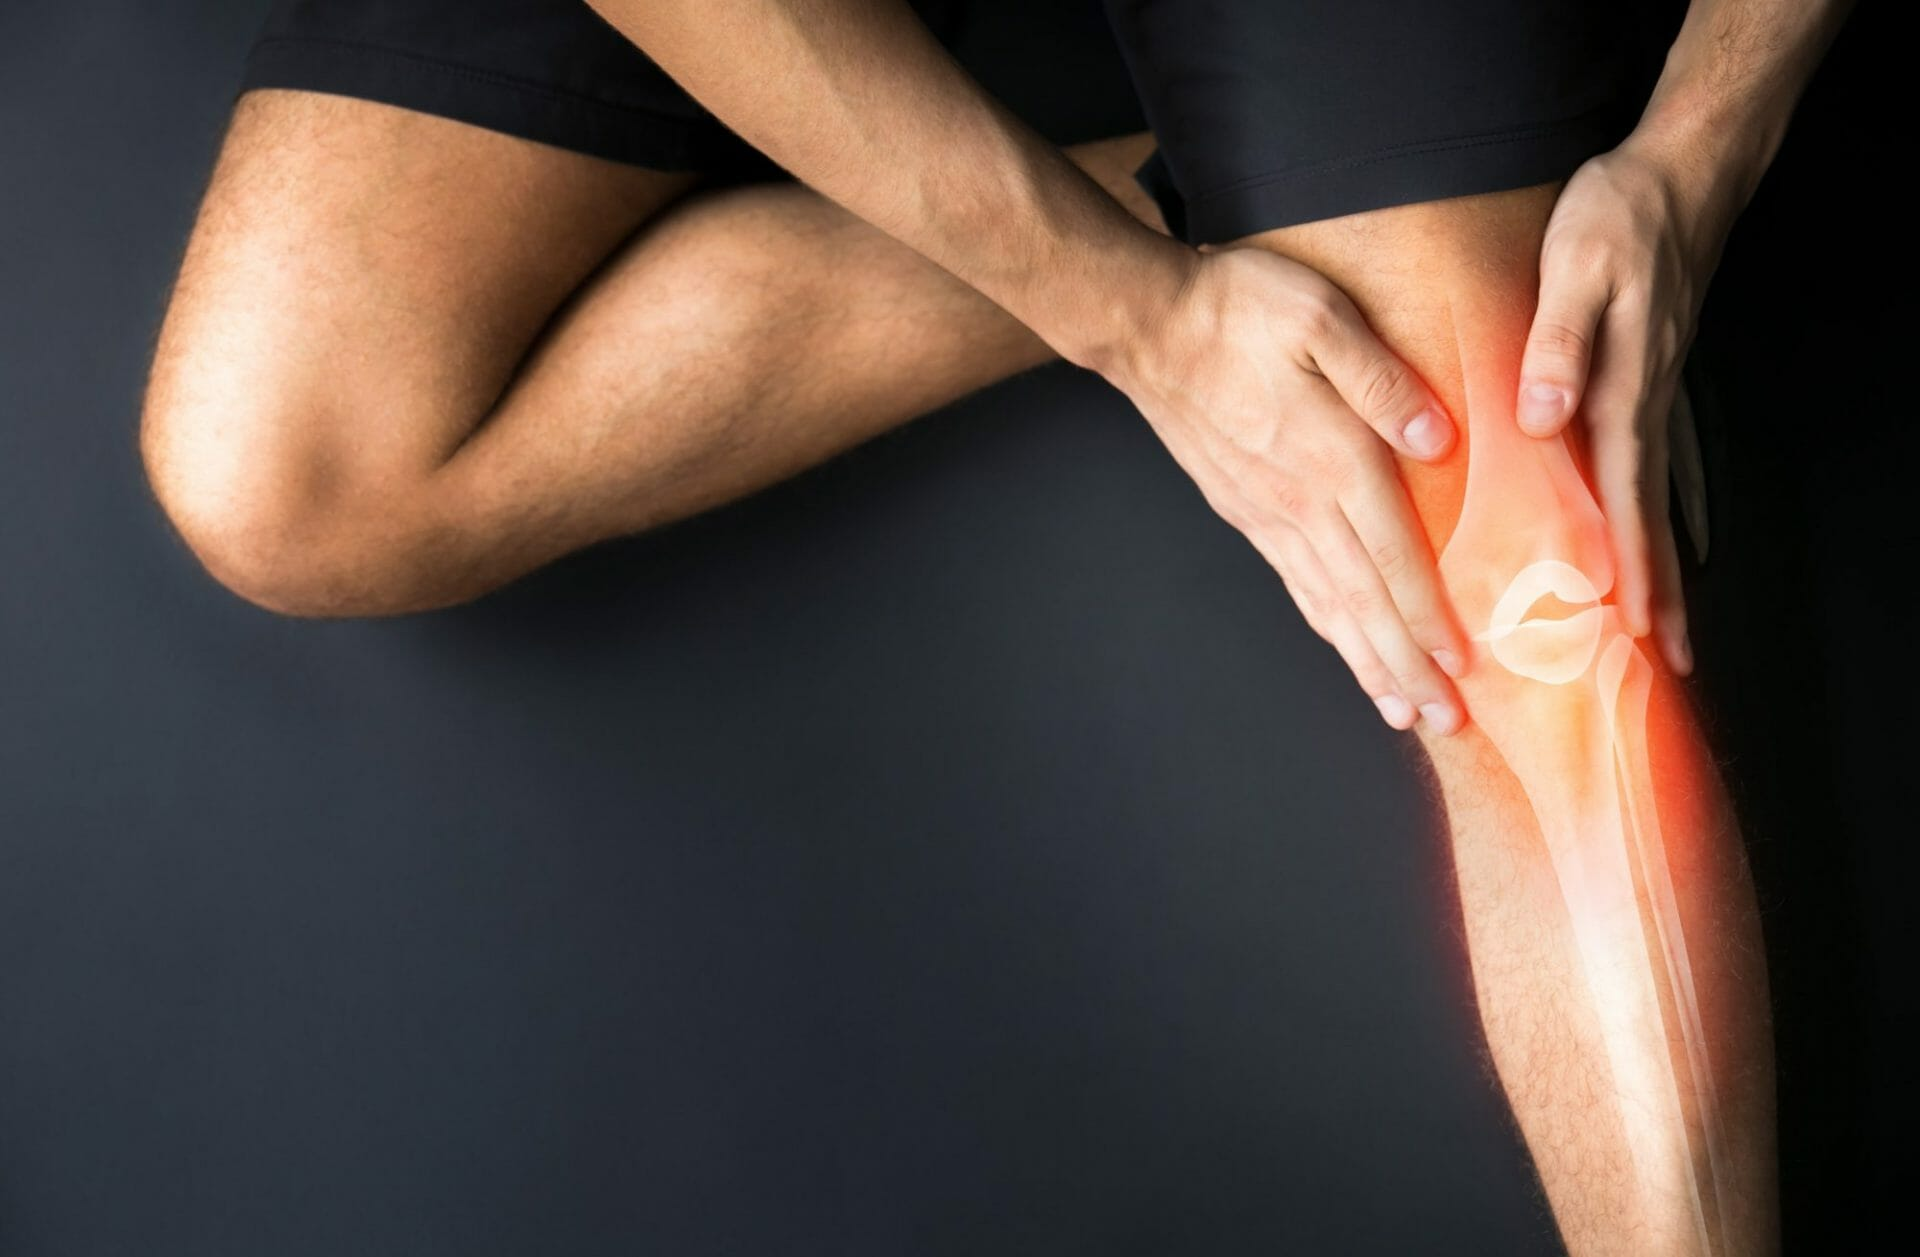 Canva - Knee trauma and joint pain-Sports injuries-min